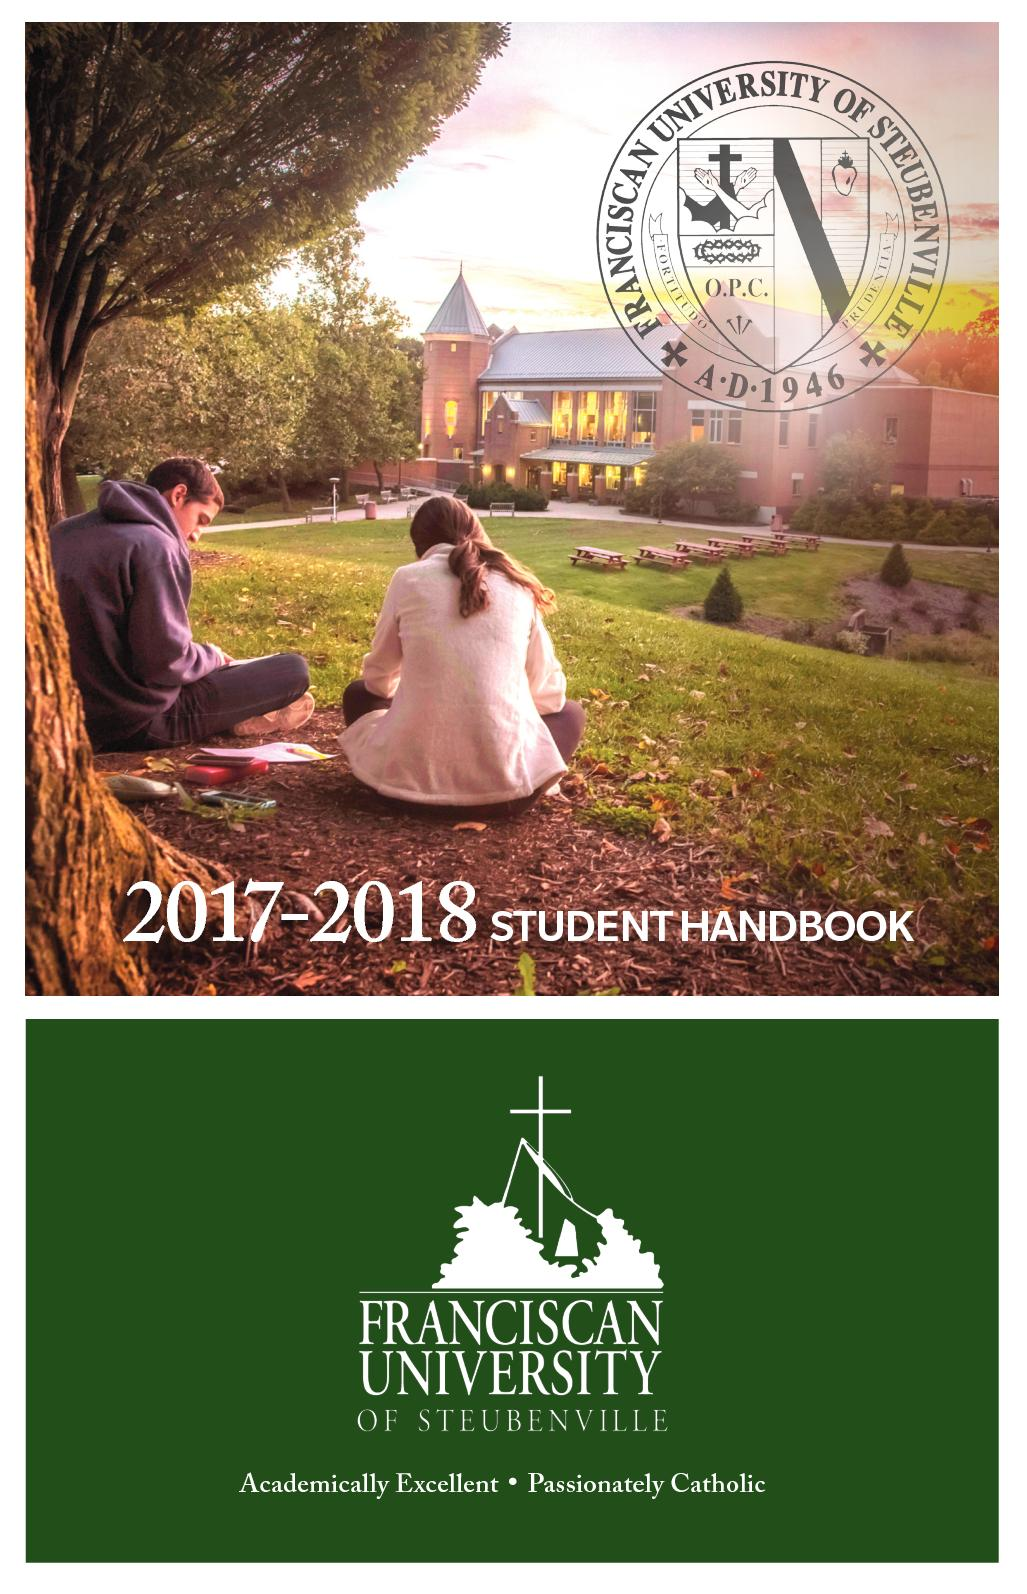 Franciscan University Campus Map.Calameo Student Handbook 2017 18 Franciscan University Of Steubenville